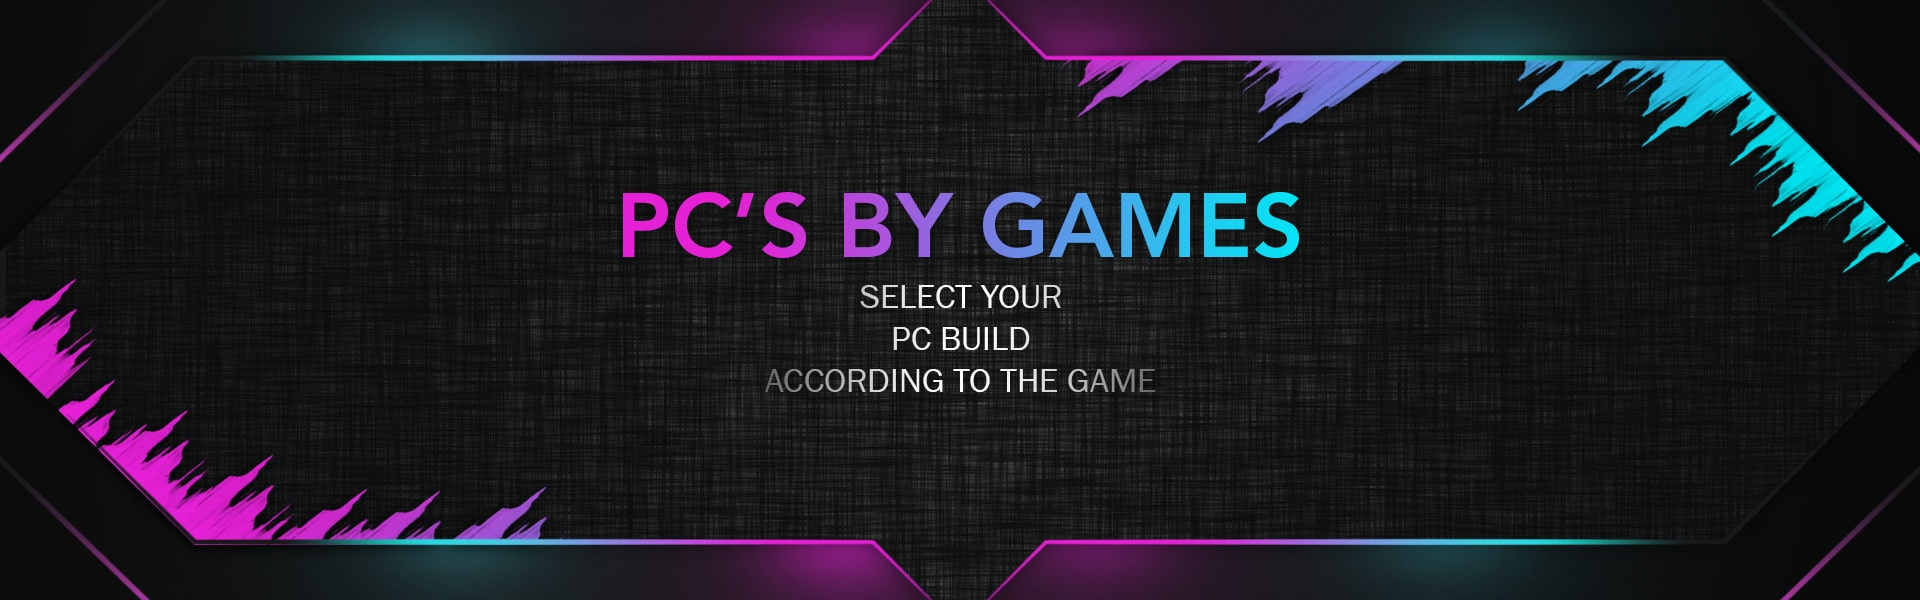 PCs by Game